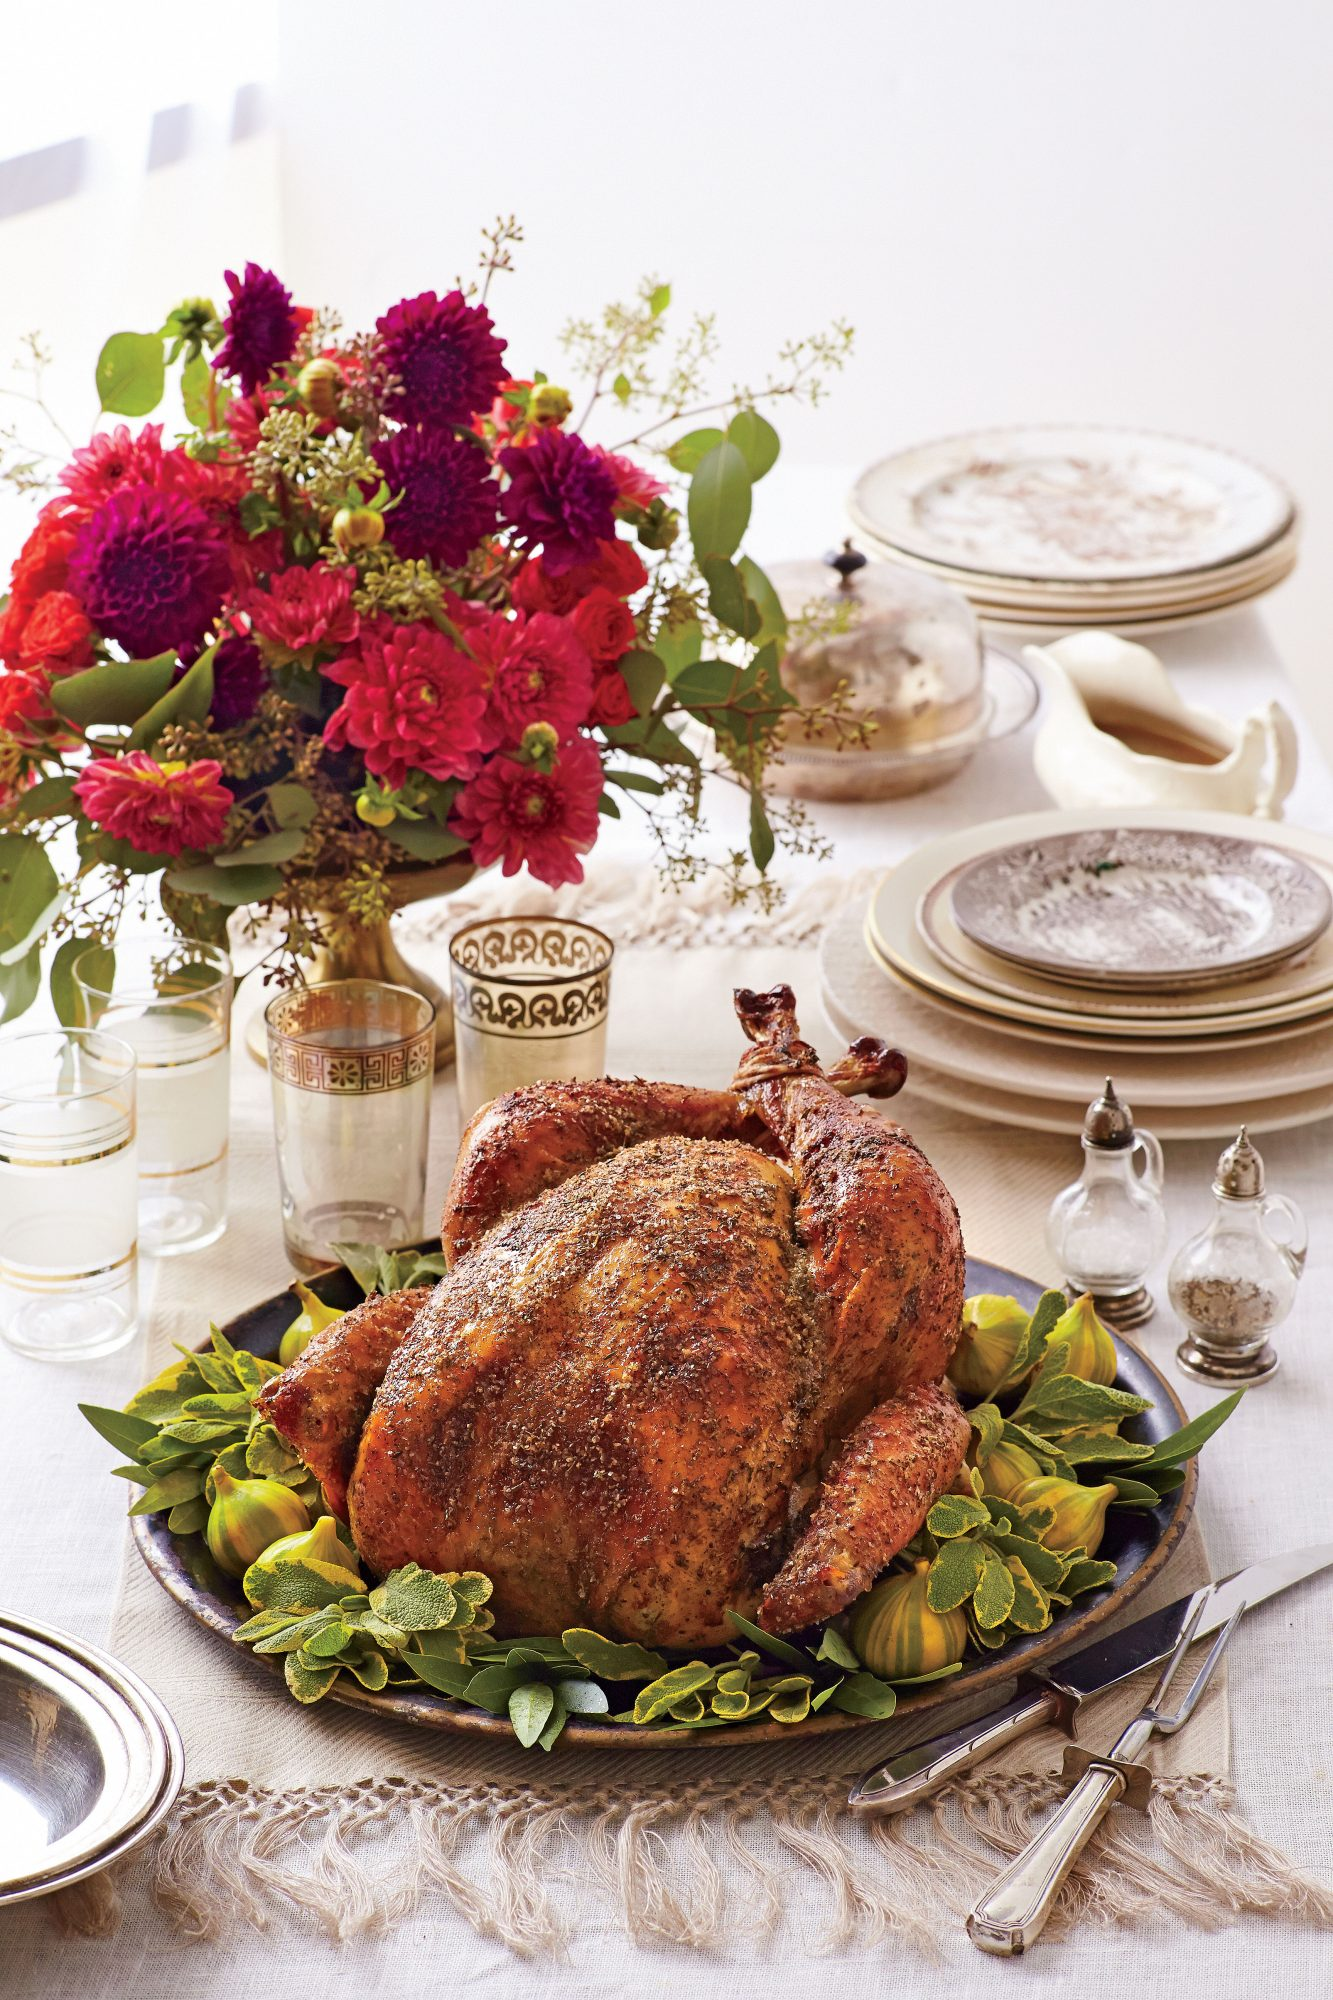 Food Network Recipes The Kitchen Dry Brined Turkey